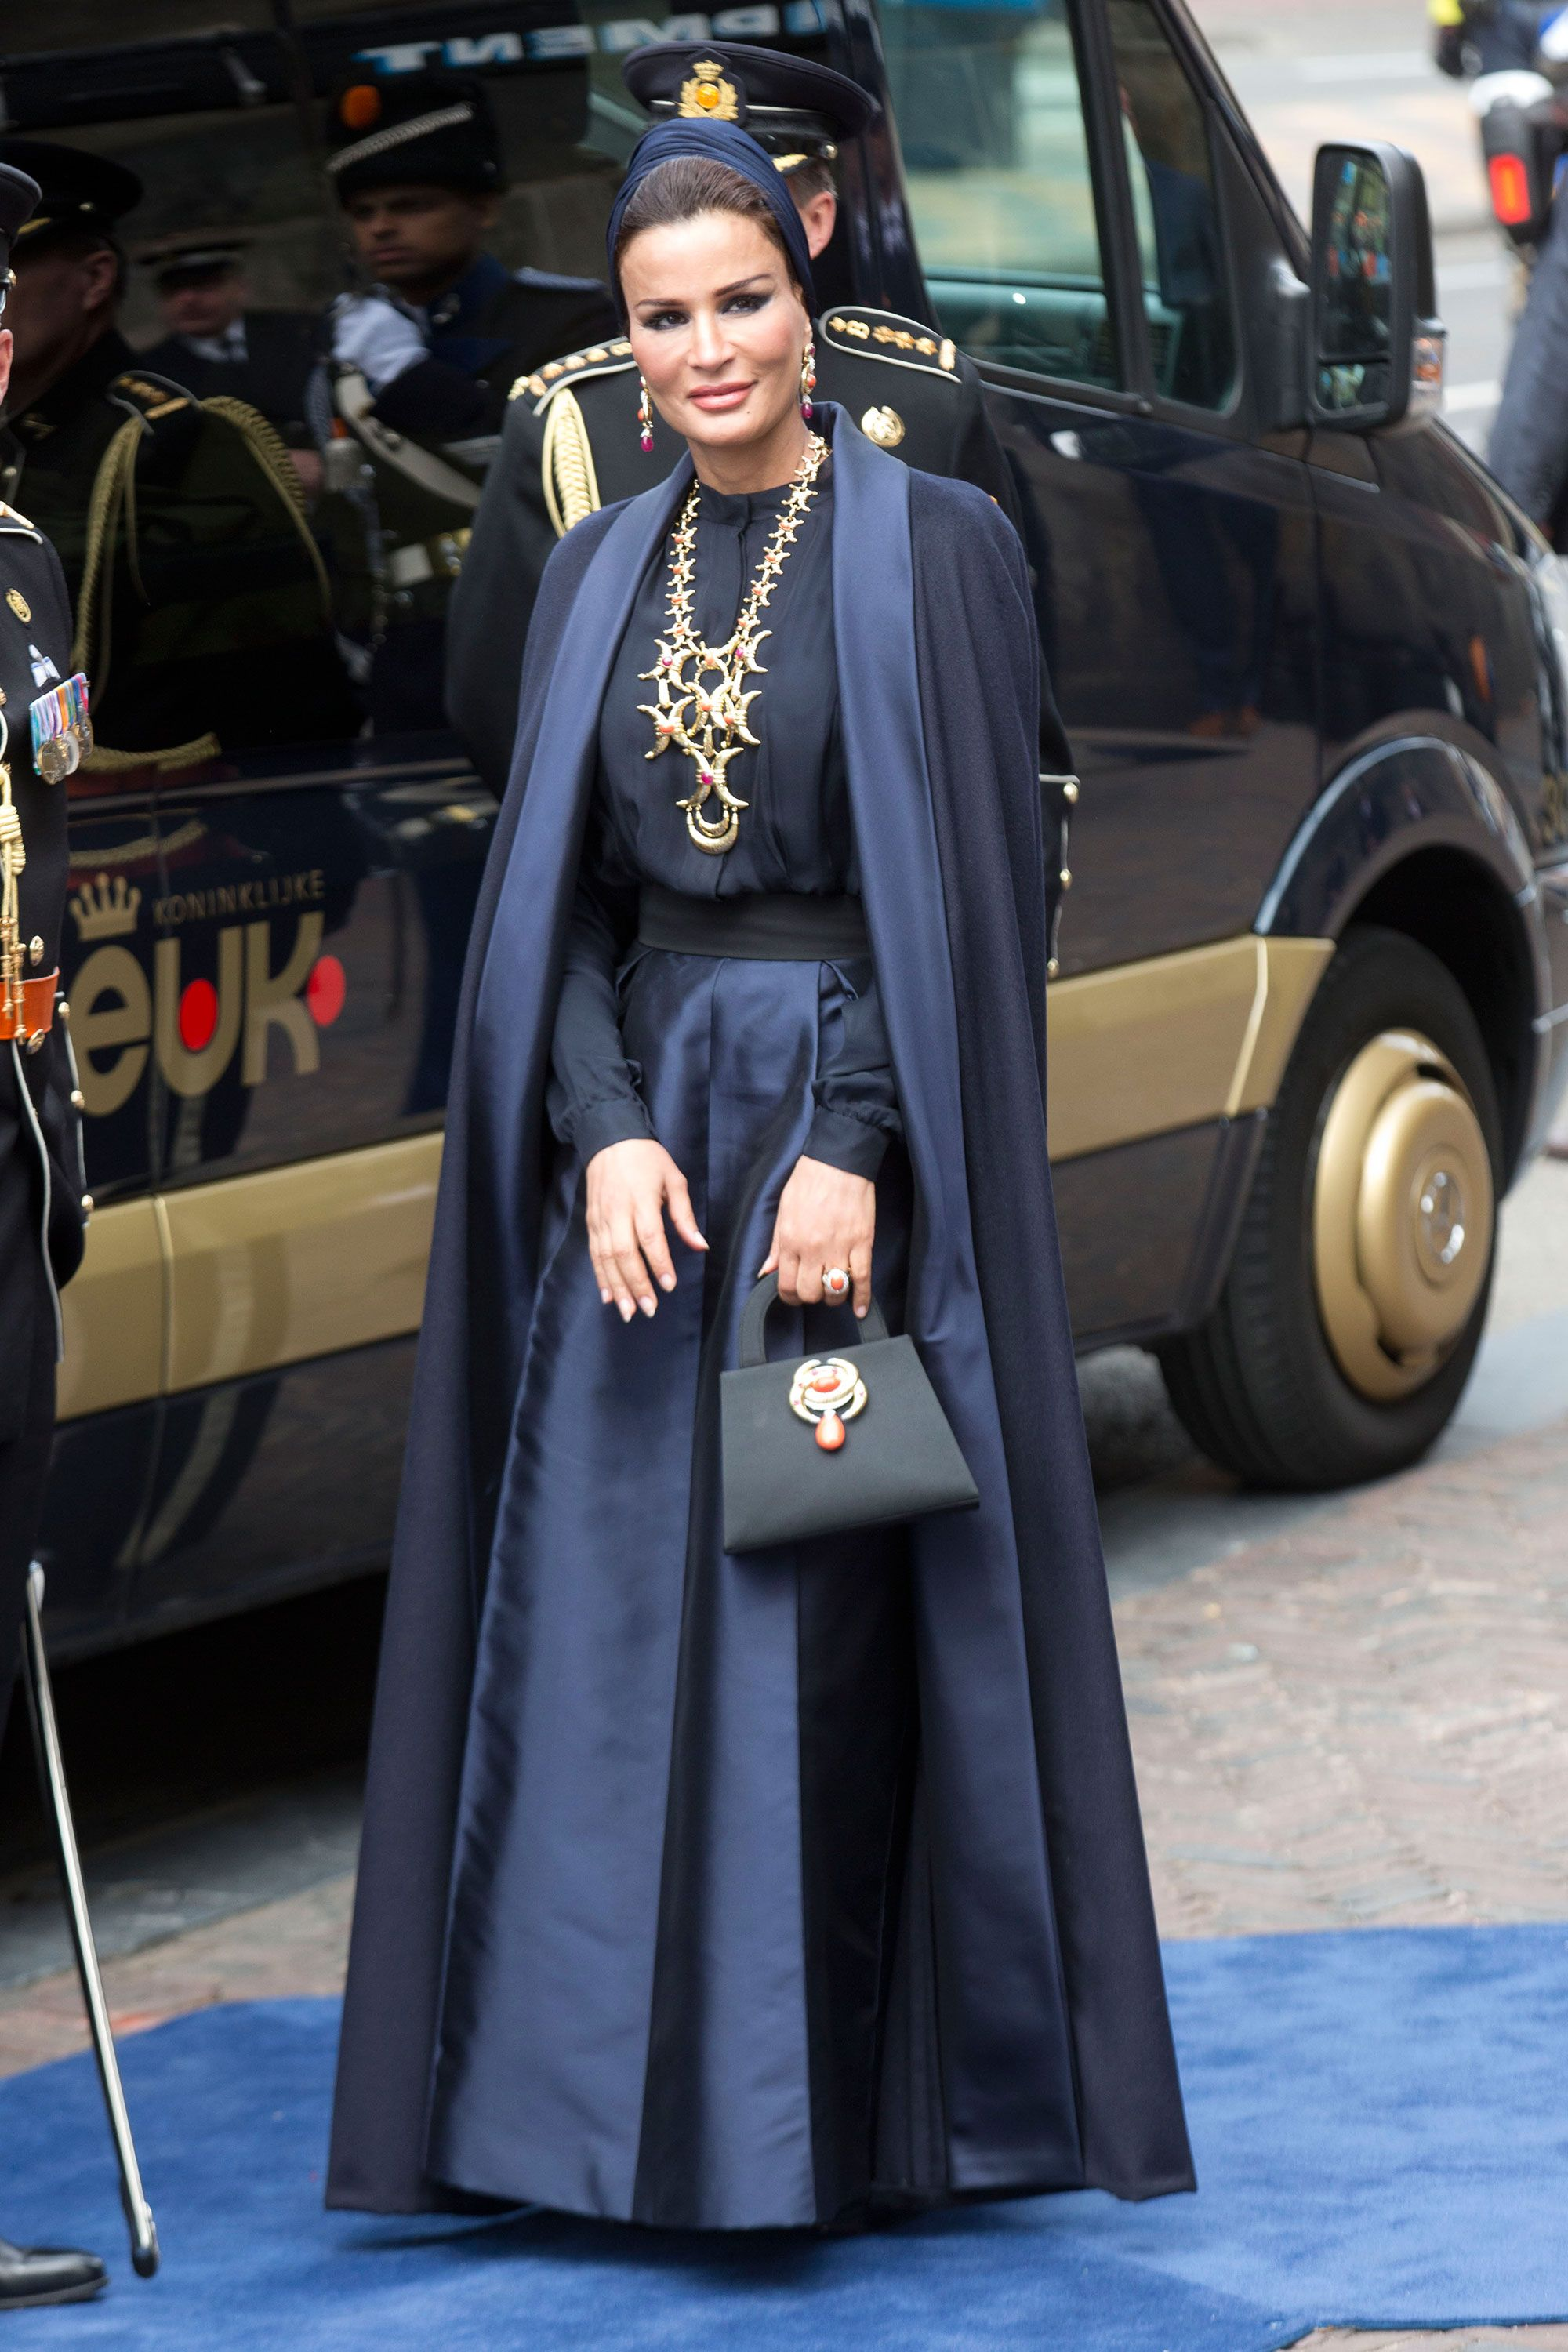 The 100 Most Stylish of 2014-Sheikha Mozah